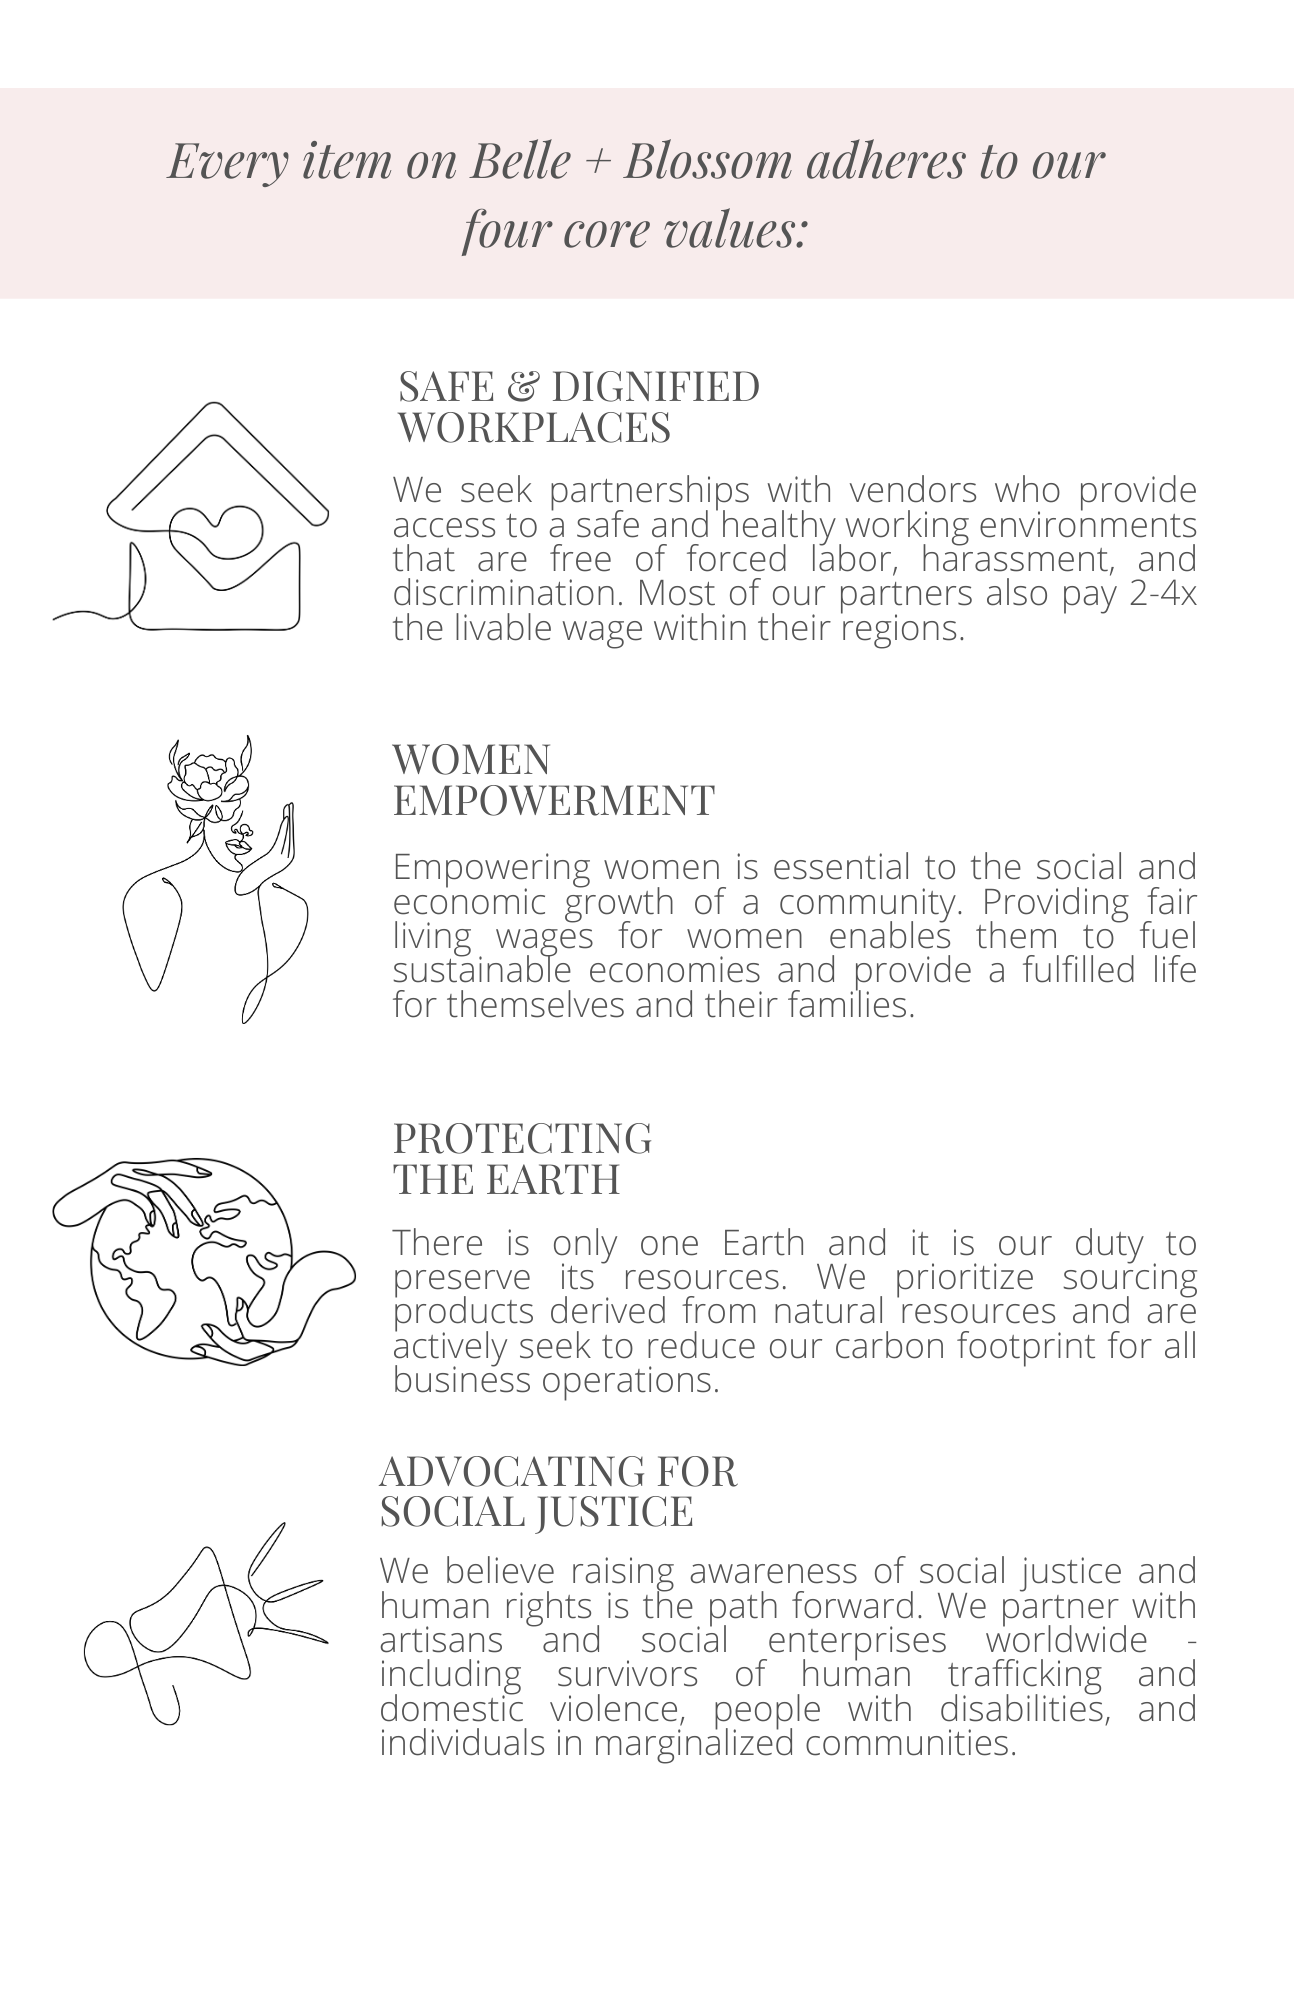 Belle + Blossom's products meet their 4 core values. SAFE + DIGNIFIED WORKPLACES We partner with brands who provide access to a safe and healthy working environments that are free of forced labor, harassment, and discrimination. Our partners pay 2-6x the livable wage within their regions. WOMEN EMPOWERMENT Empowering women is essential to the social and economic growth of a community. Providing fair living wages for women enables them to fuel sustainable economies and provide a fulfilled life for themselves and their families. PROTECTING THE EARTH There is only one Earth and it is our duty to preserve its resources. We prioritize ethically sourcing products derived from natural resources and actively seek to reduce our carbon footprint across all business operations. ADVOCATING FOR SOCIAL JUSTICE We believe raising awareness of social justice is the path forward. We partner with artisans and social enterprises worldwide - including survivors of human trafficking and domestic violence, people with disabilities, and individuals in marginalized communities.